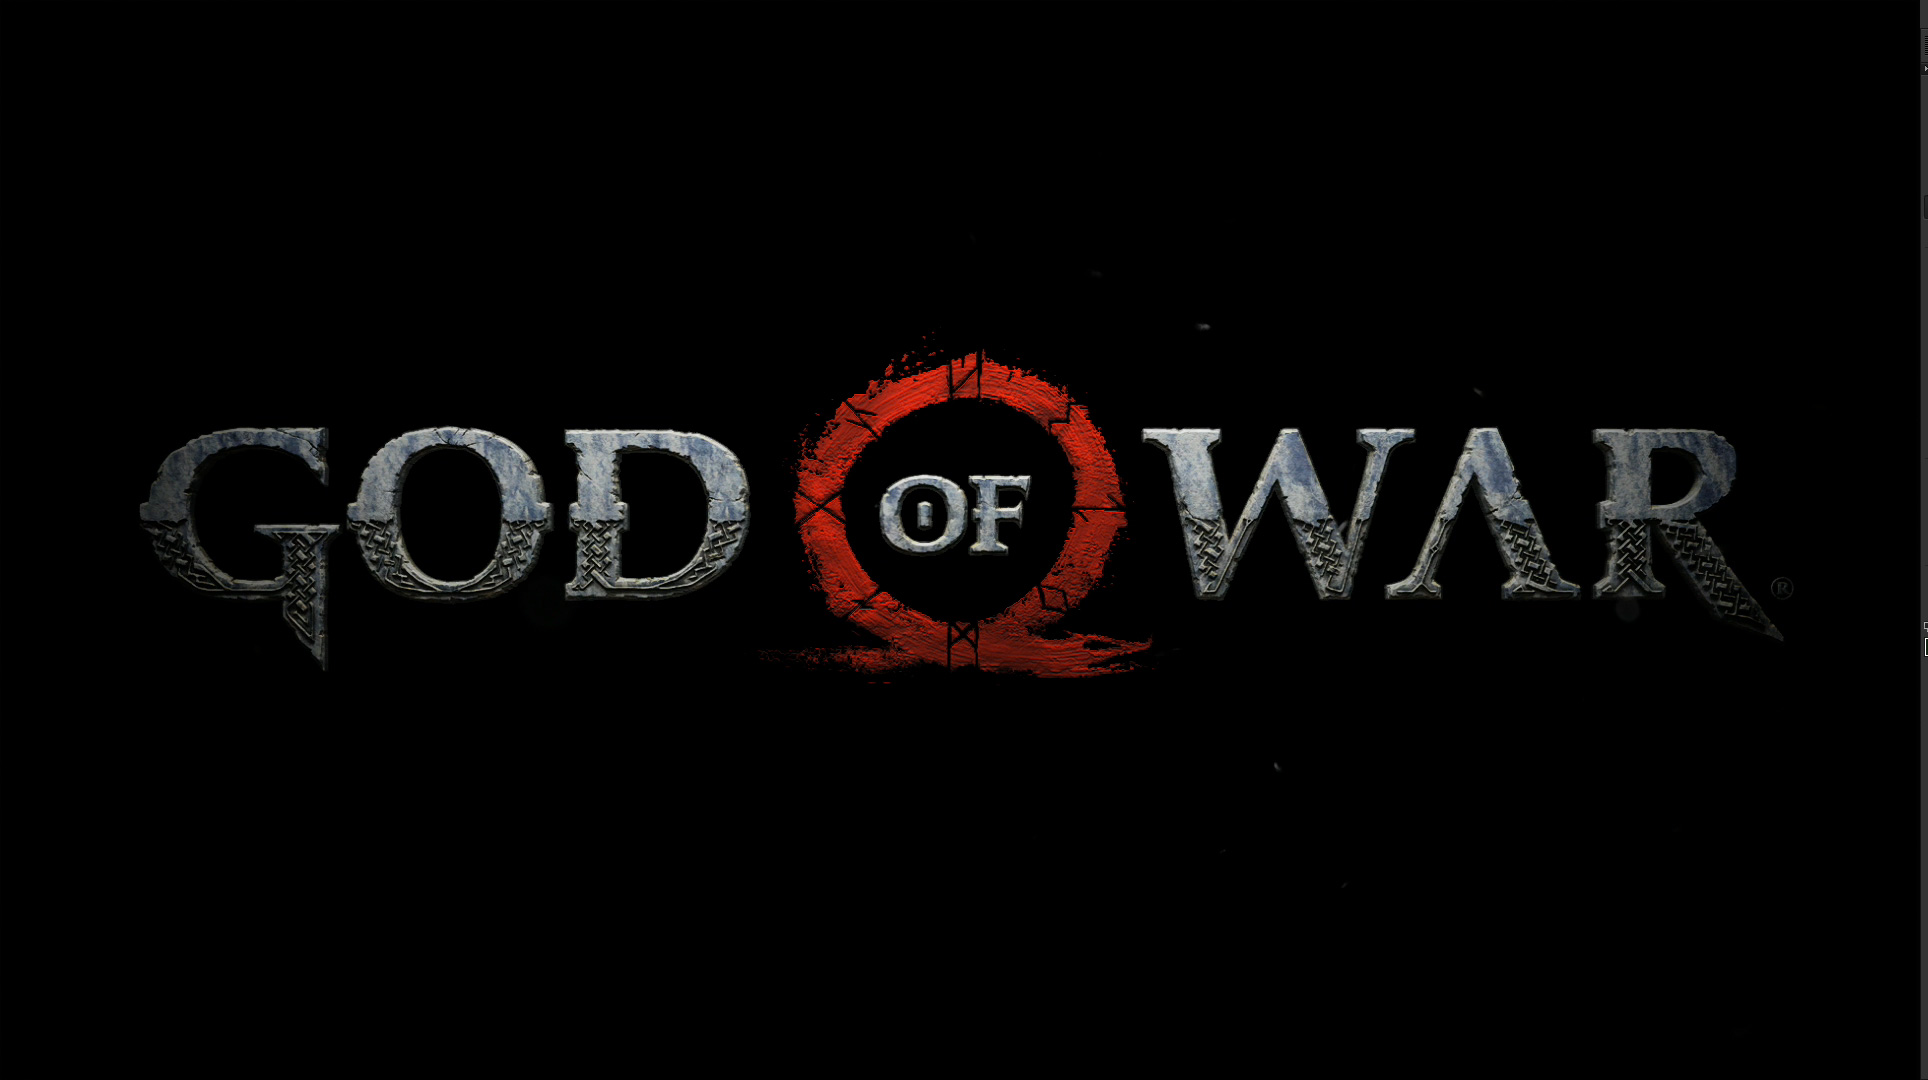 GOD-OF-WAR-TITLE